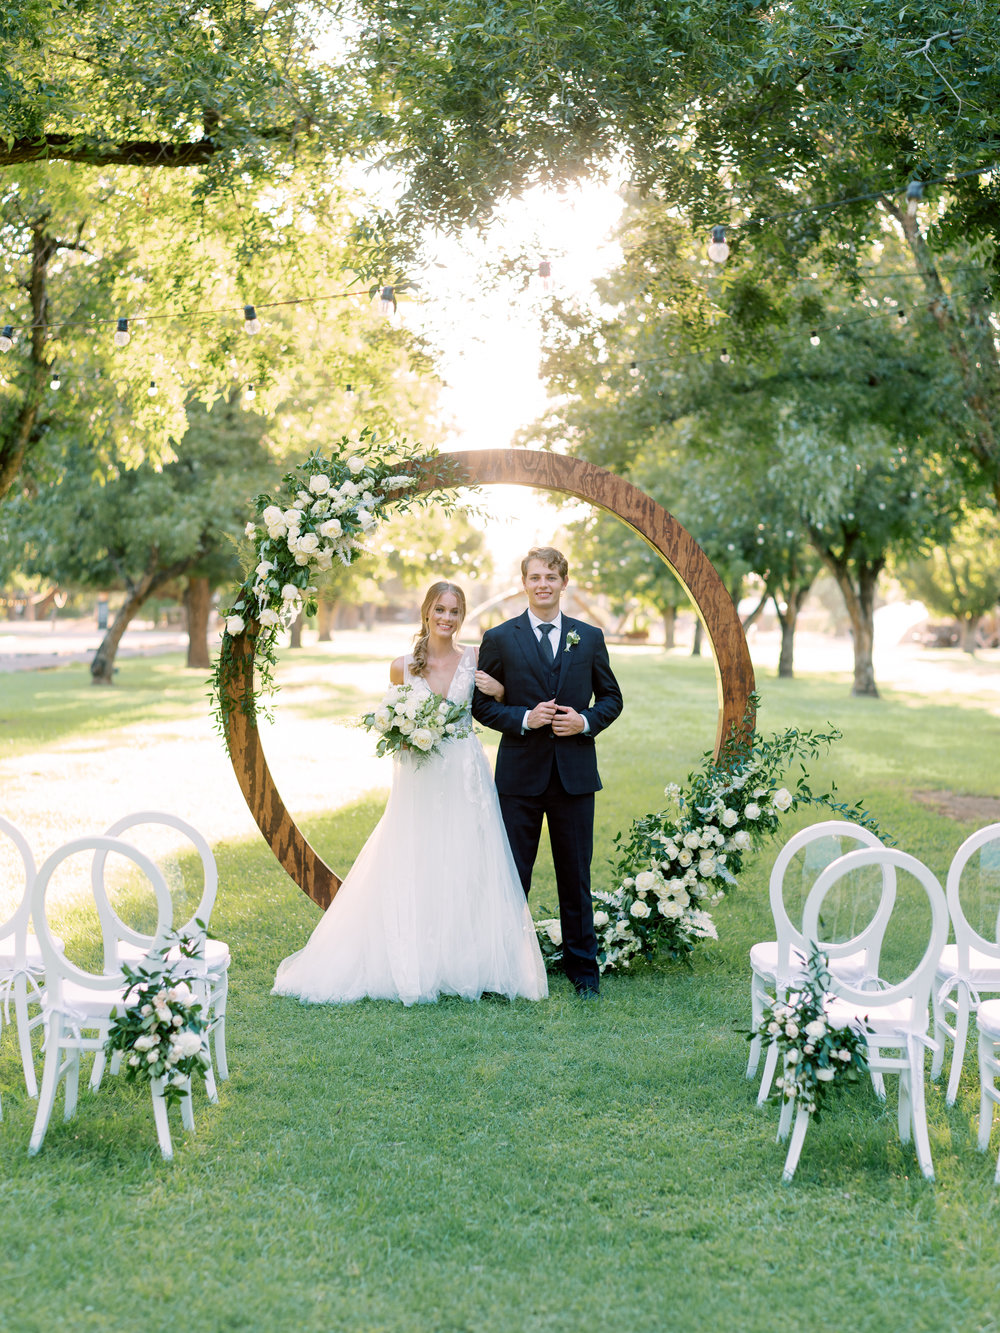 White Wedding at The Farm at South Mountain - Circle Arch Ceremony